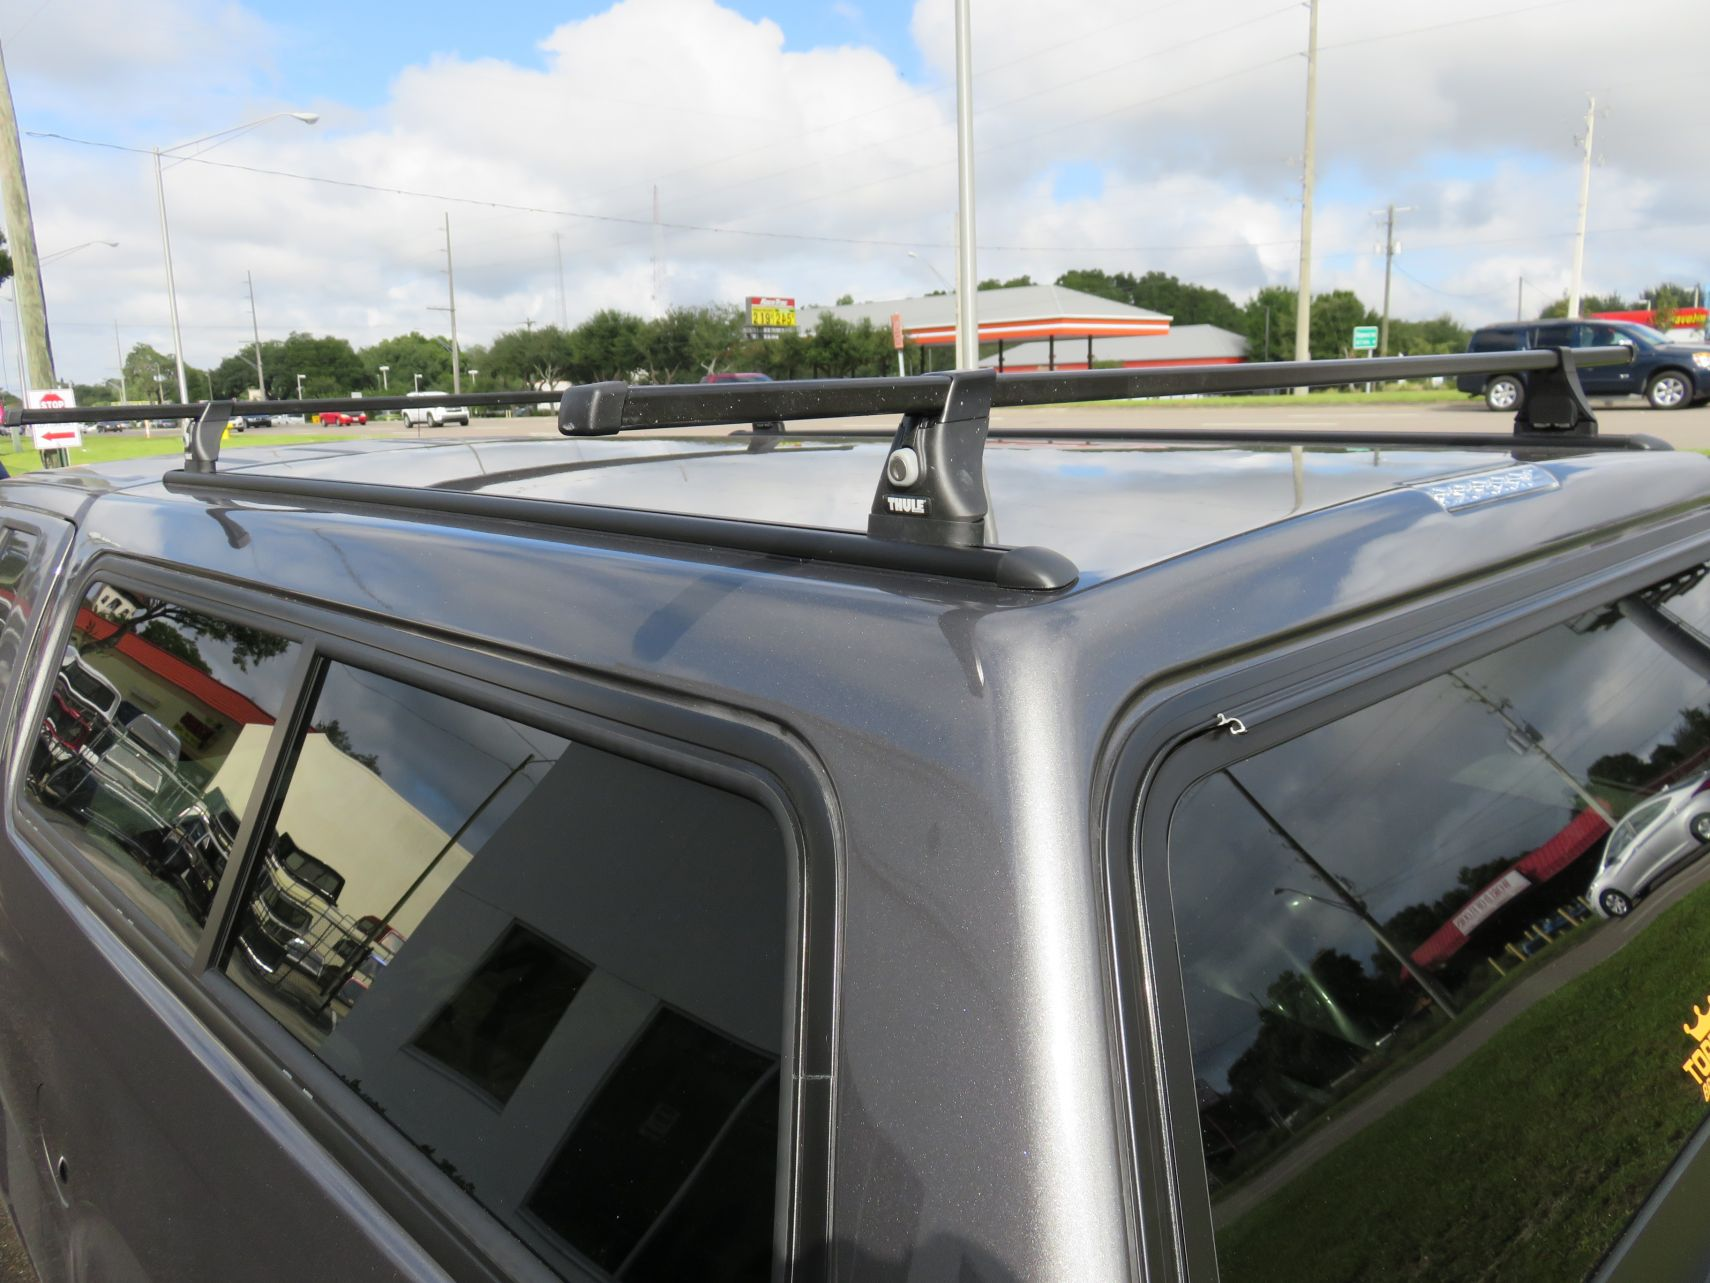 Thule Tracker Ii Roof Rack Topperking Topperking